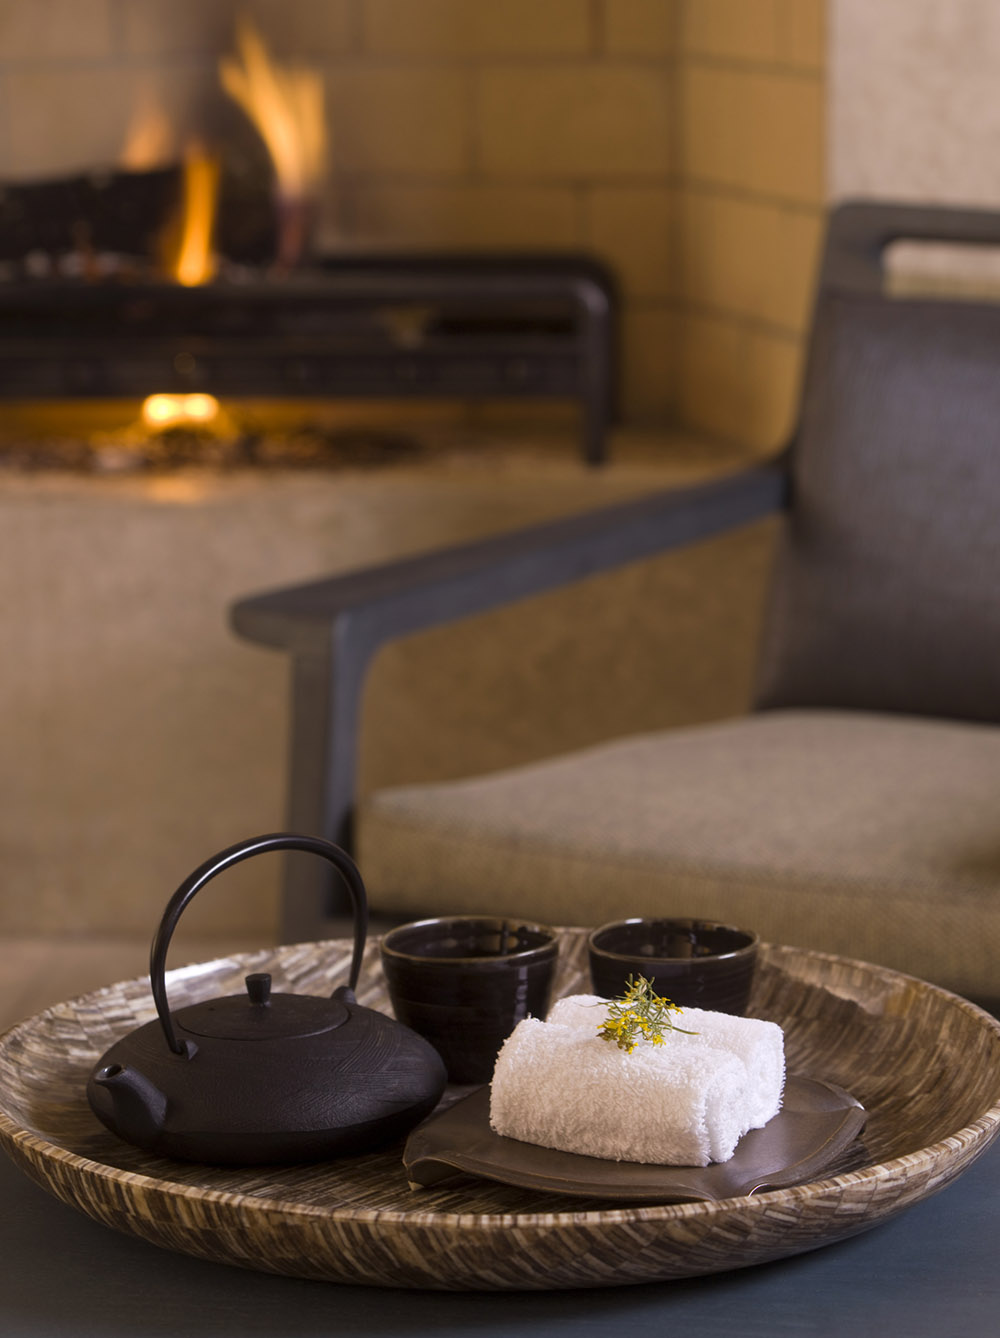 Tea and flavored waters are among the refreshments served to guests at the spa.